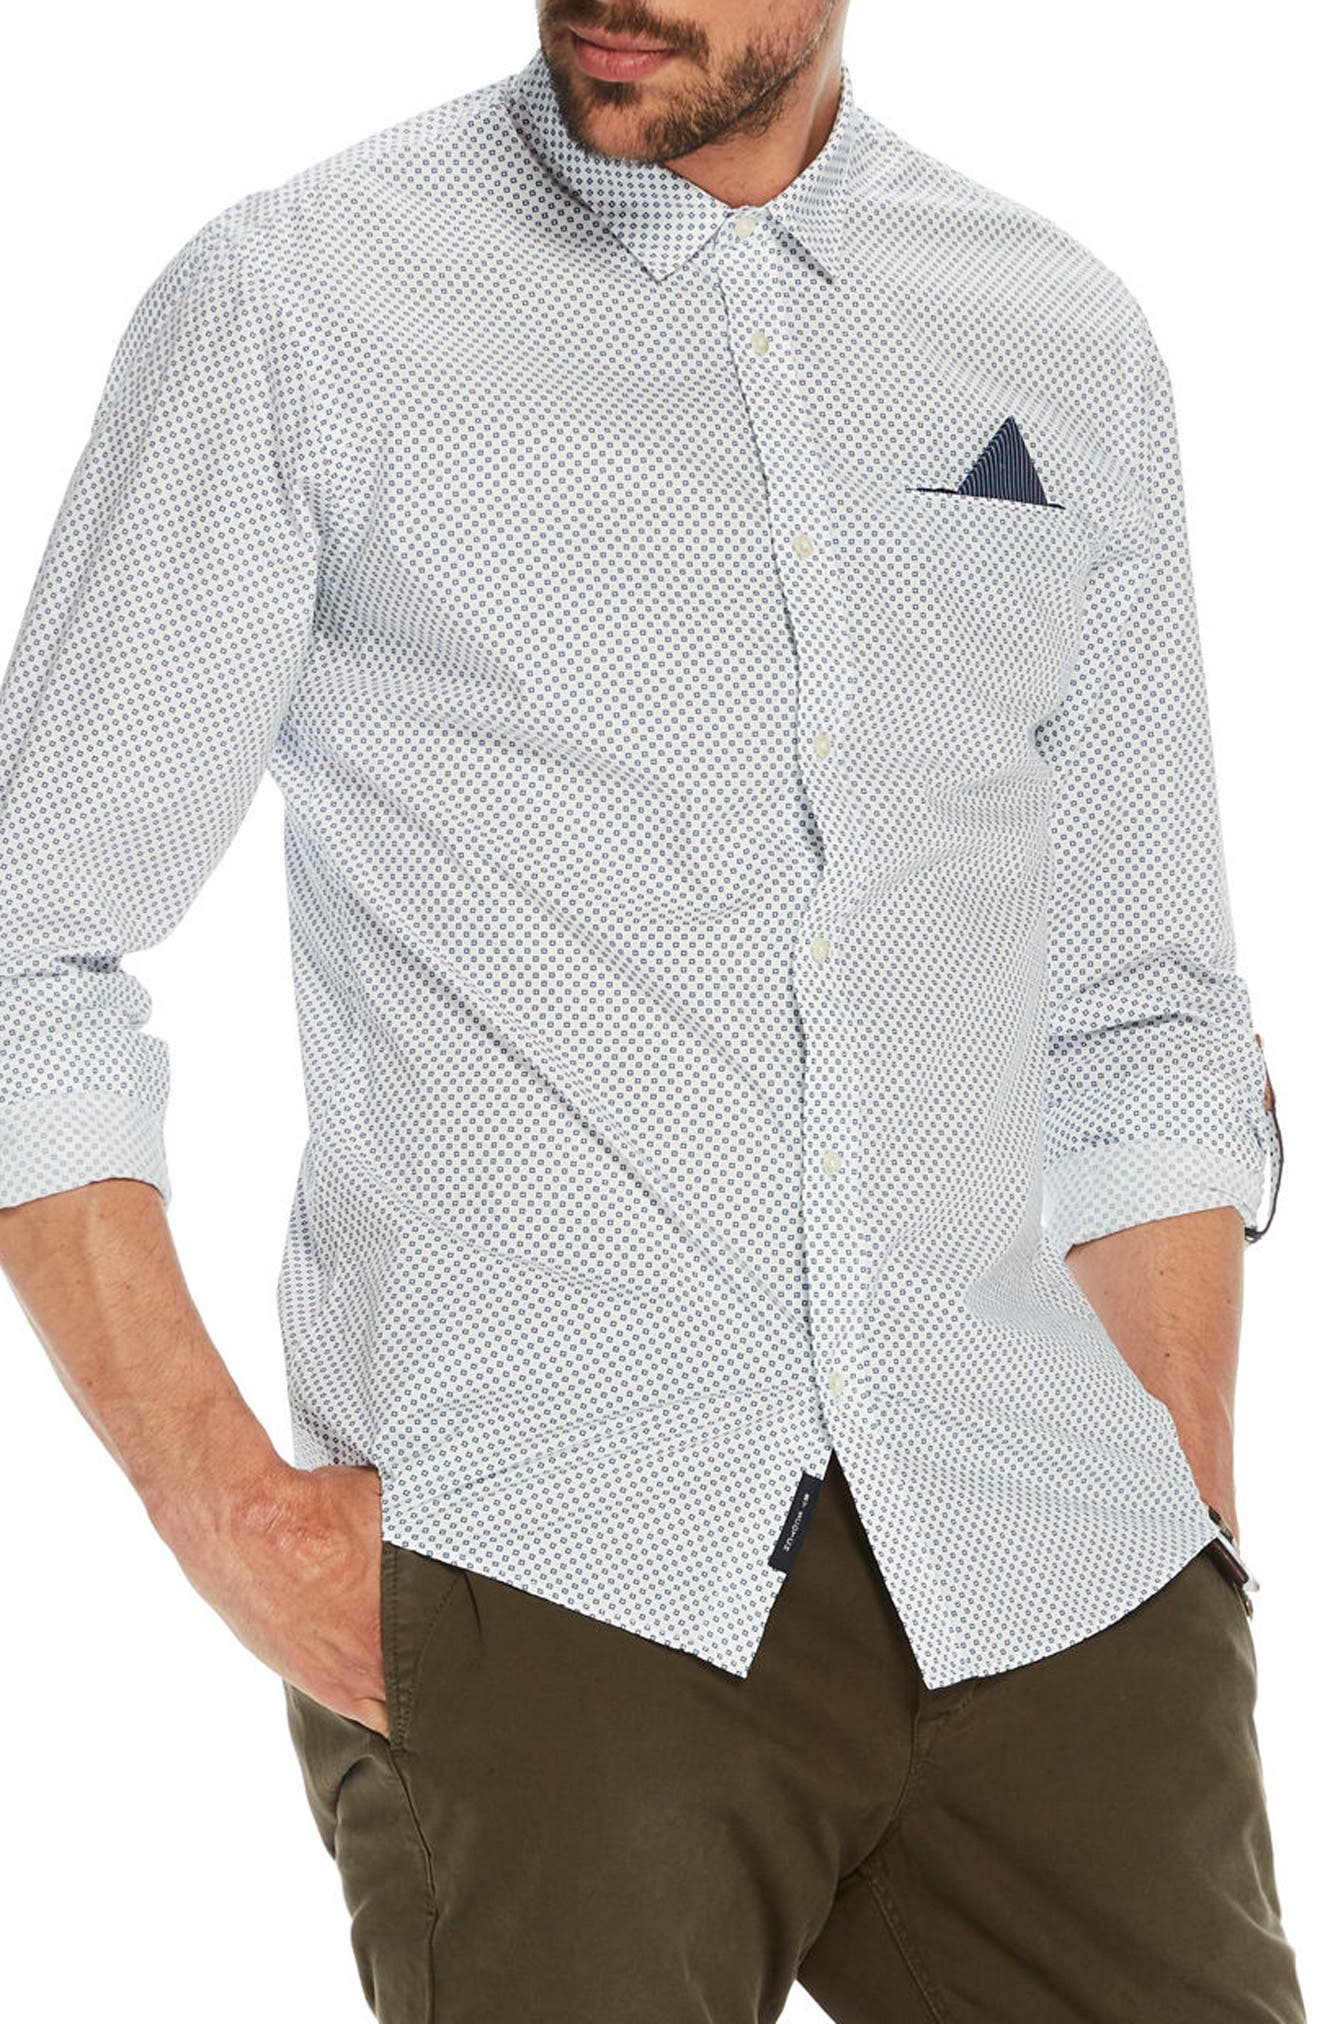 Main Image - Scotch & Soda Classic Woven Shirt